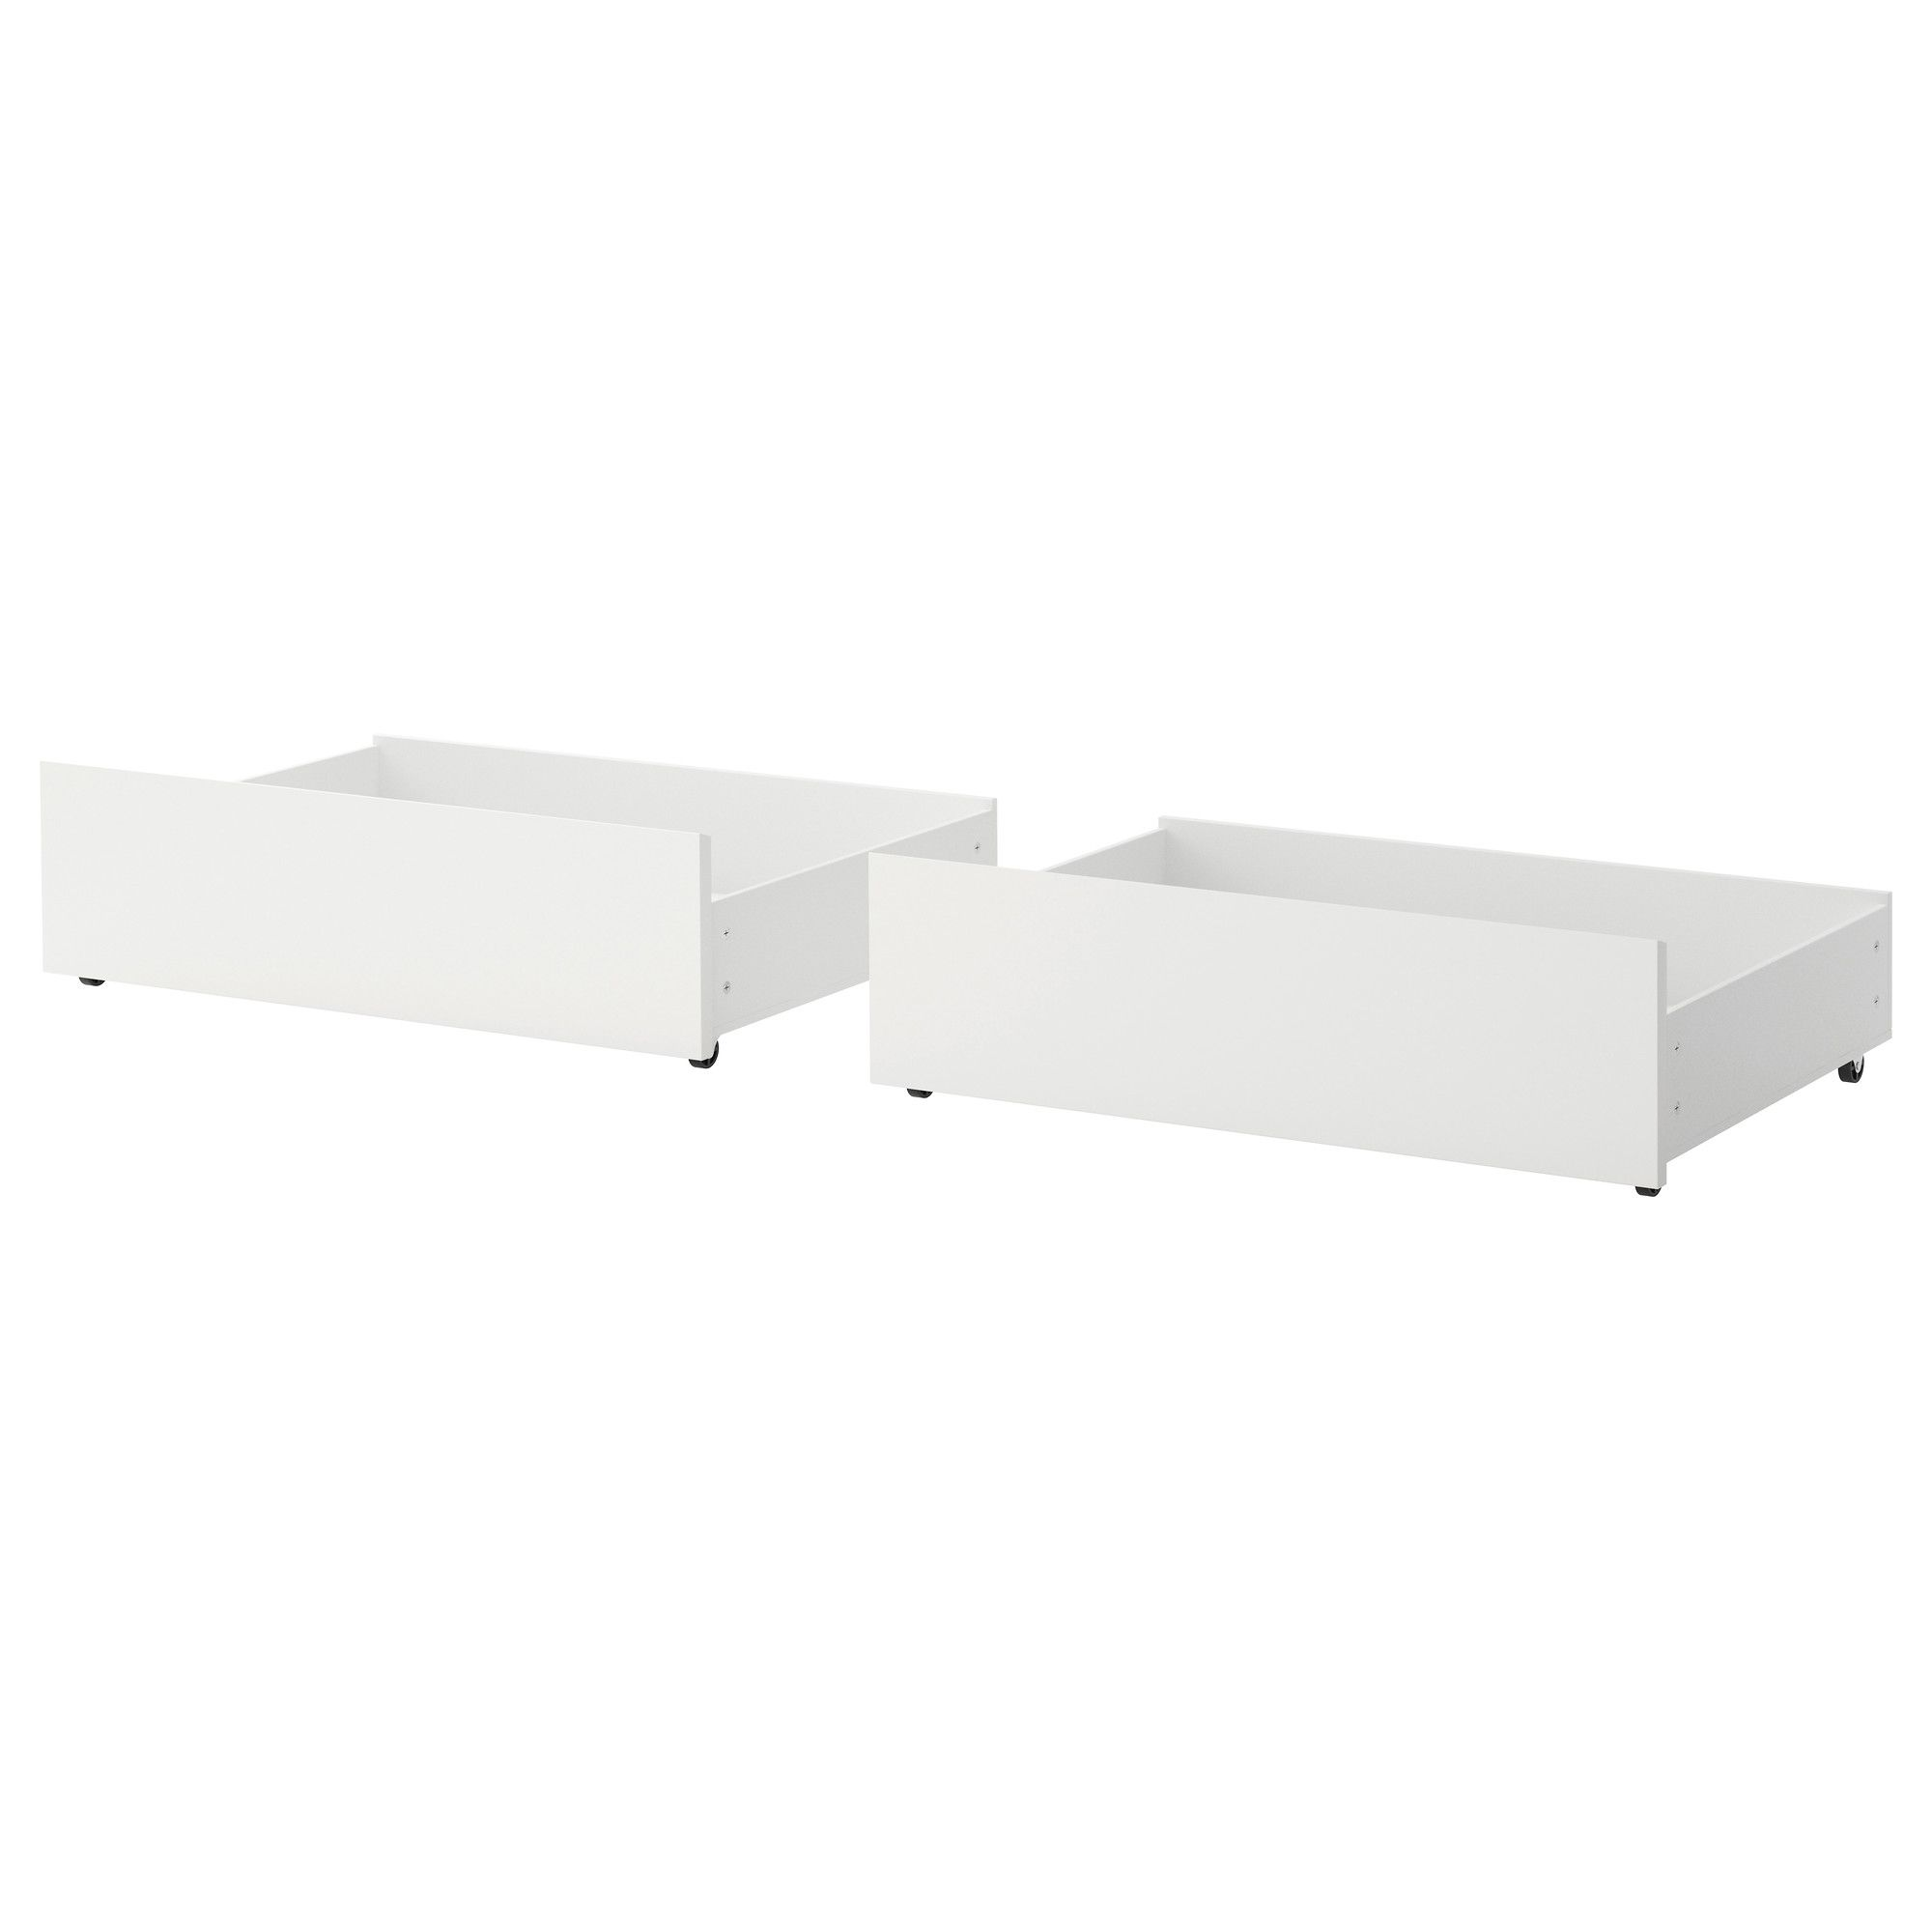 Ikea Malm Underbed Storage Box For High Bed White Full Double Twin Single You Get A Lot Of Extra Under The Frame If